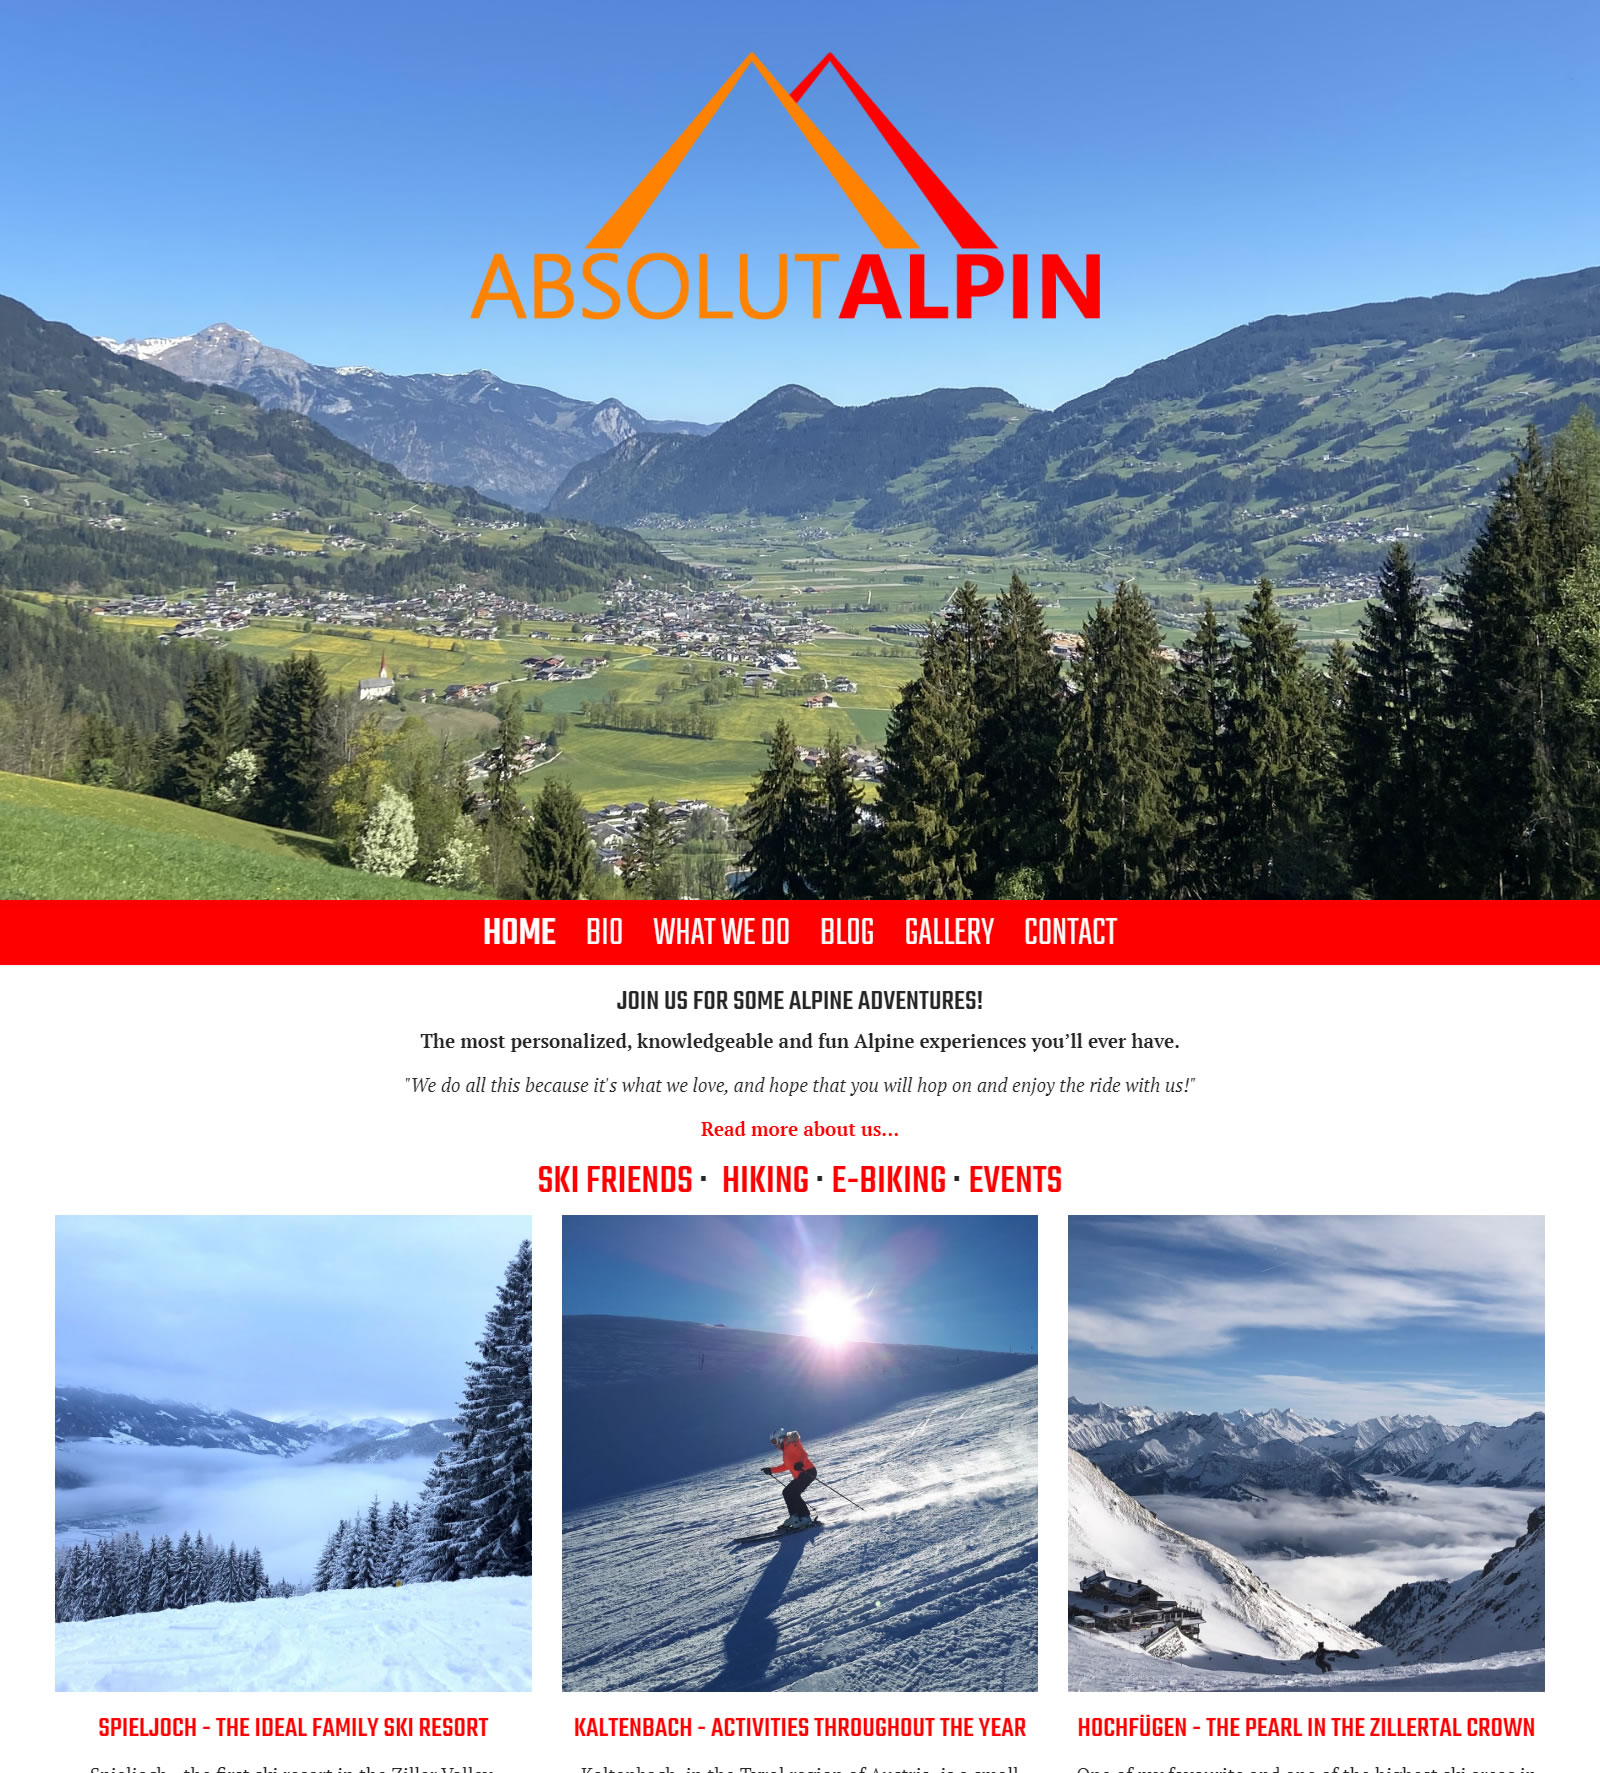 Absolut Alpin